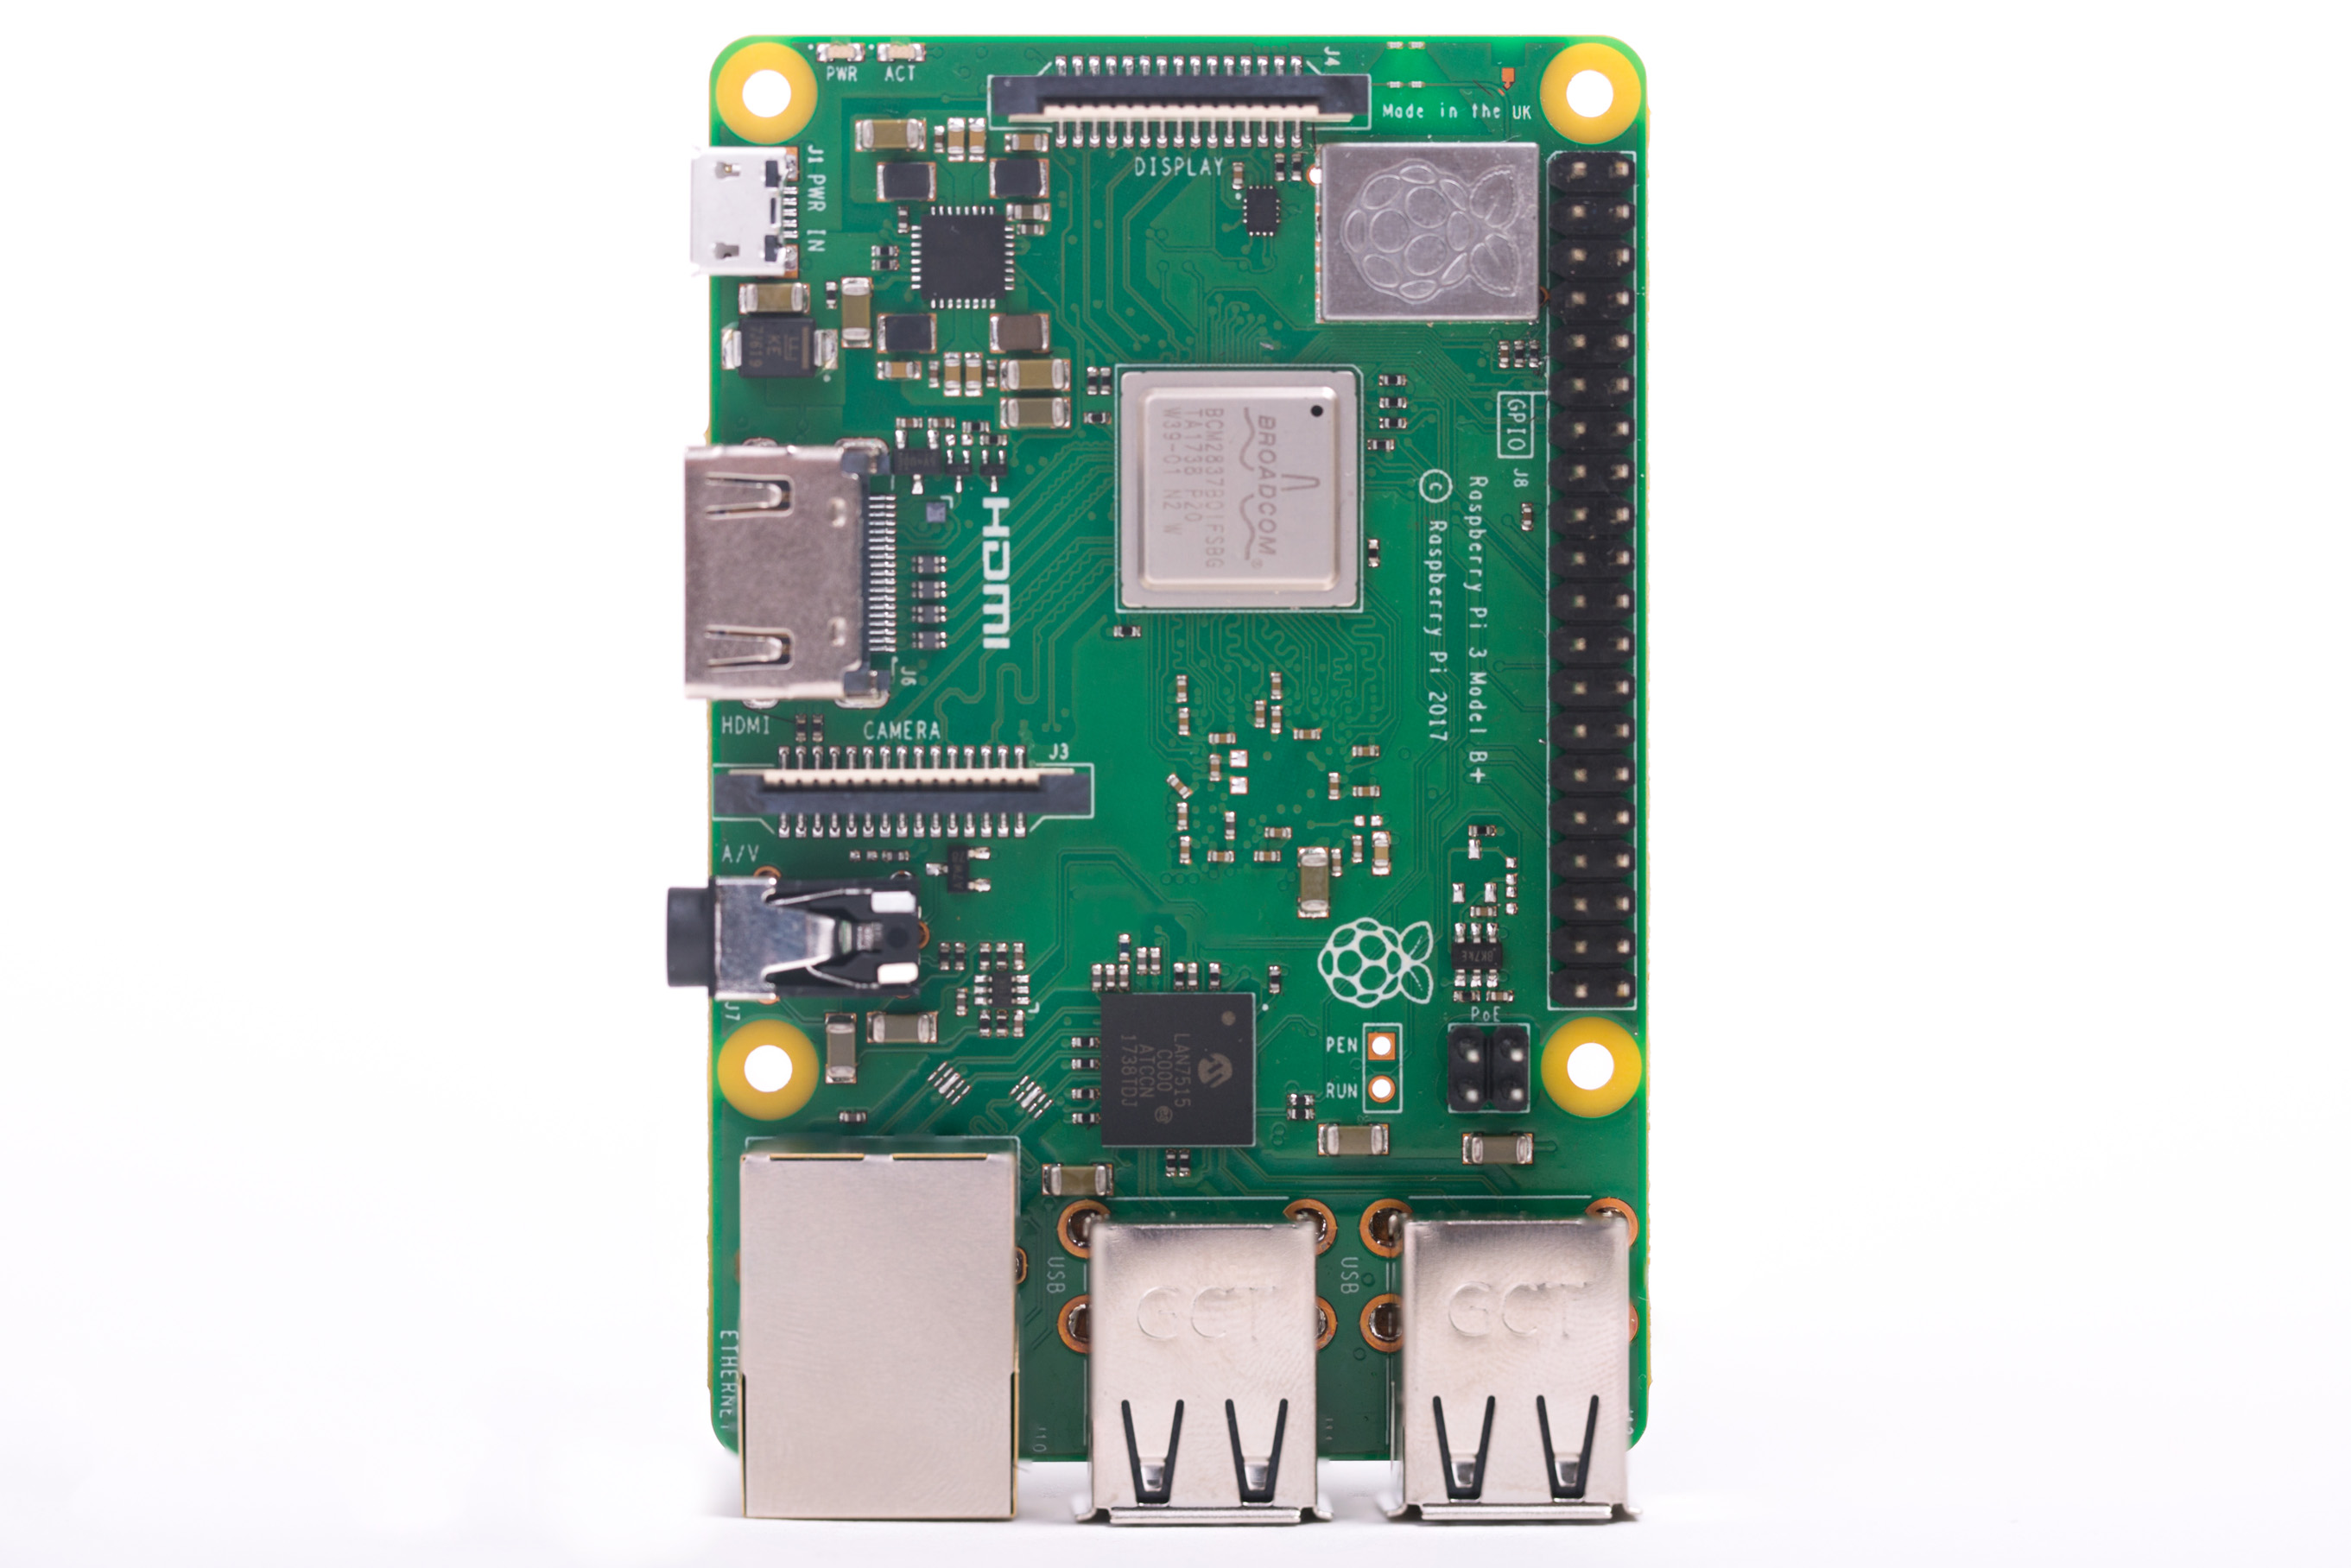 Raspberry Pi 3 Model B+: An insider's guide (free PDF)